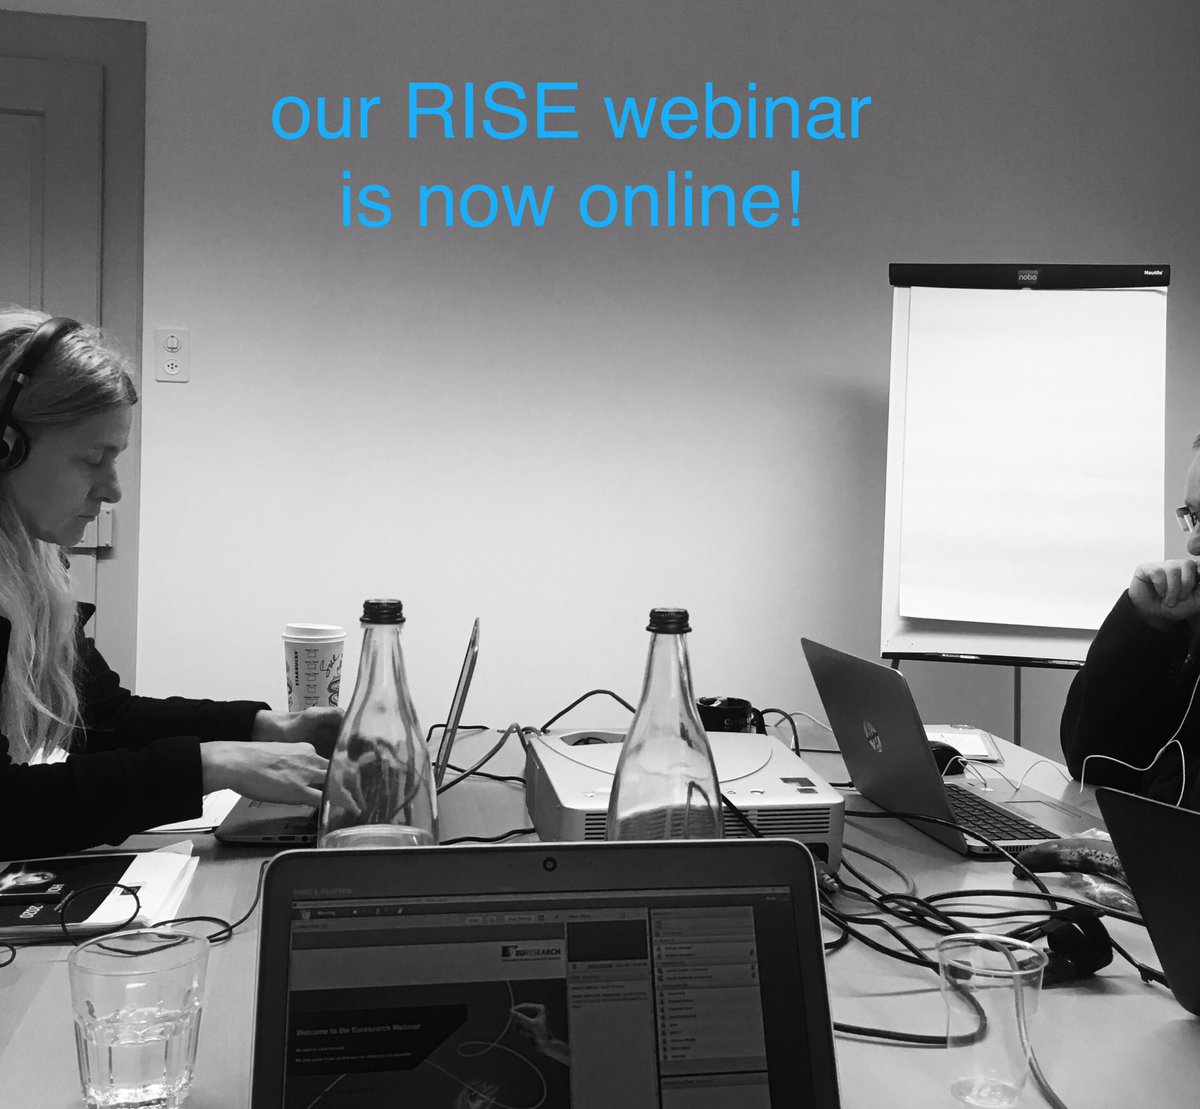 Did you miss our live webinar this morning? You can watch it anytime on:  https:// youtu.be/eRzPcZb1Qv4  &nbsp;   #MSCA @SwissEuresearch<br>http://pic.twitter.com/RMyfH7XYHj